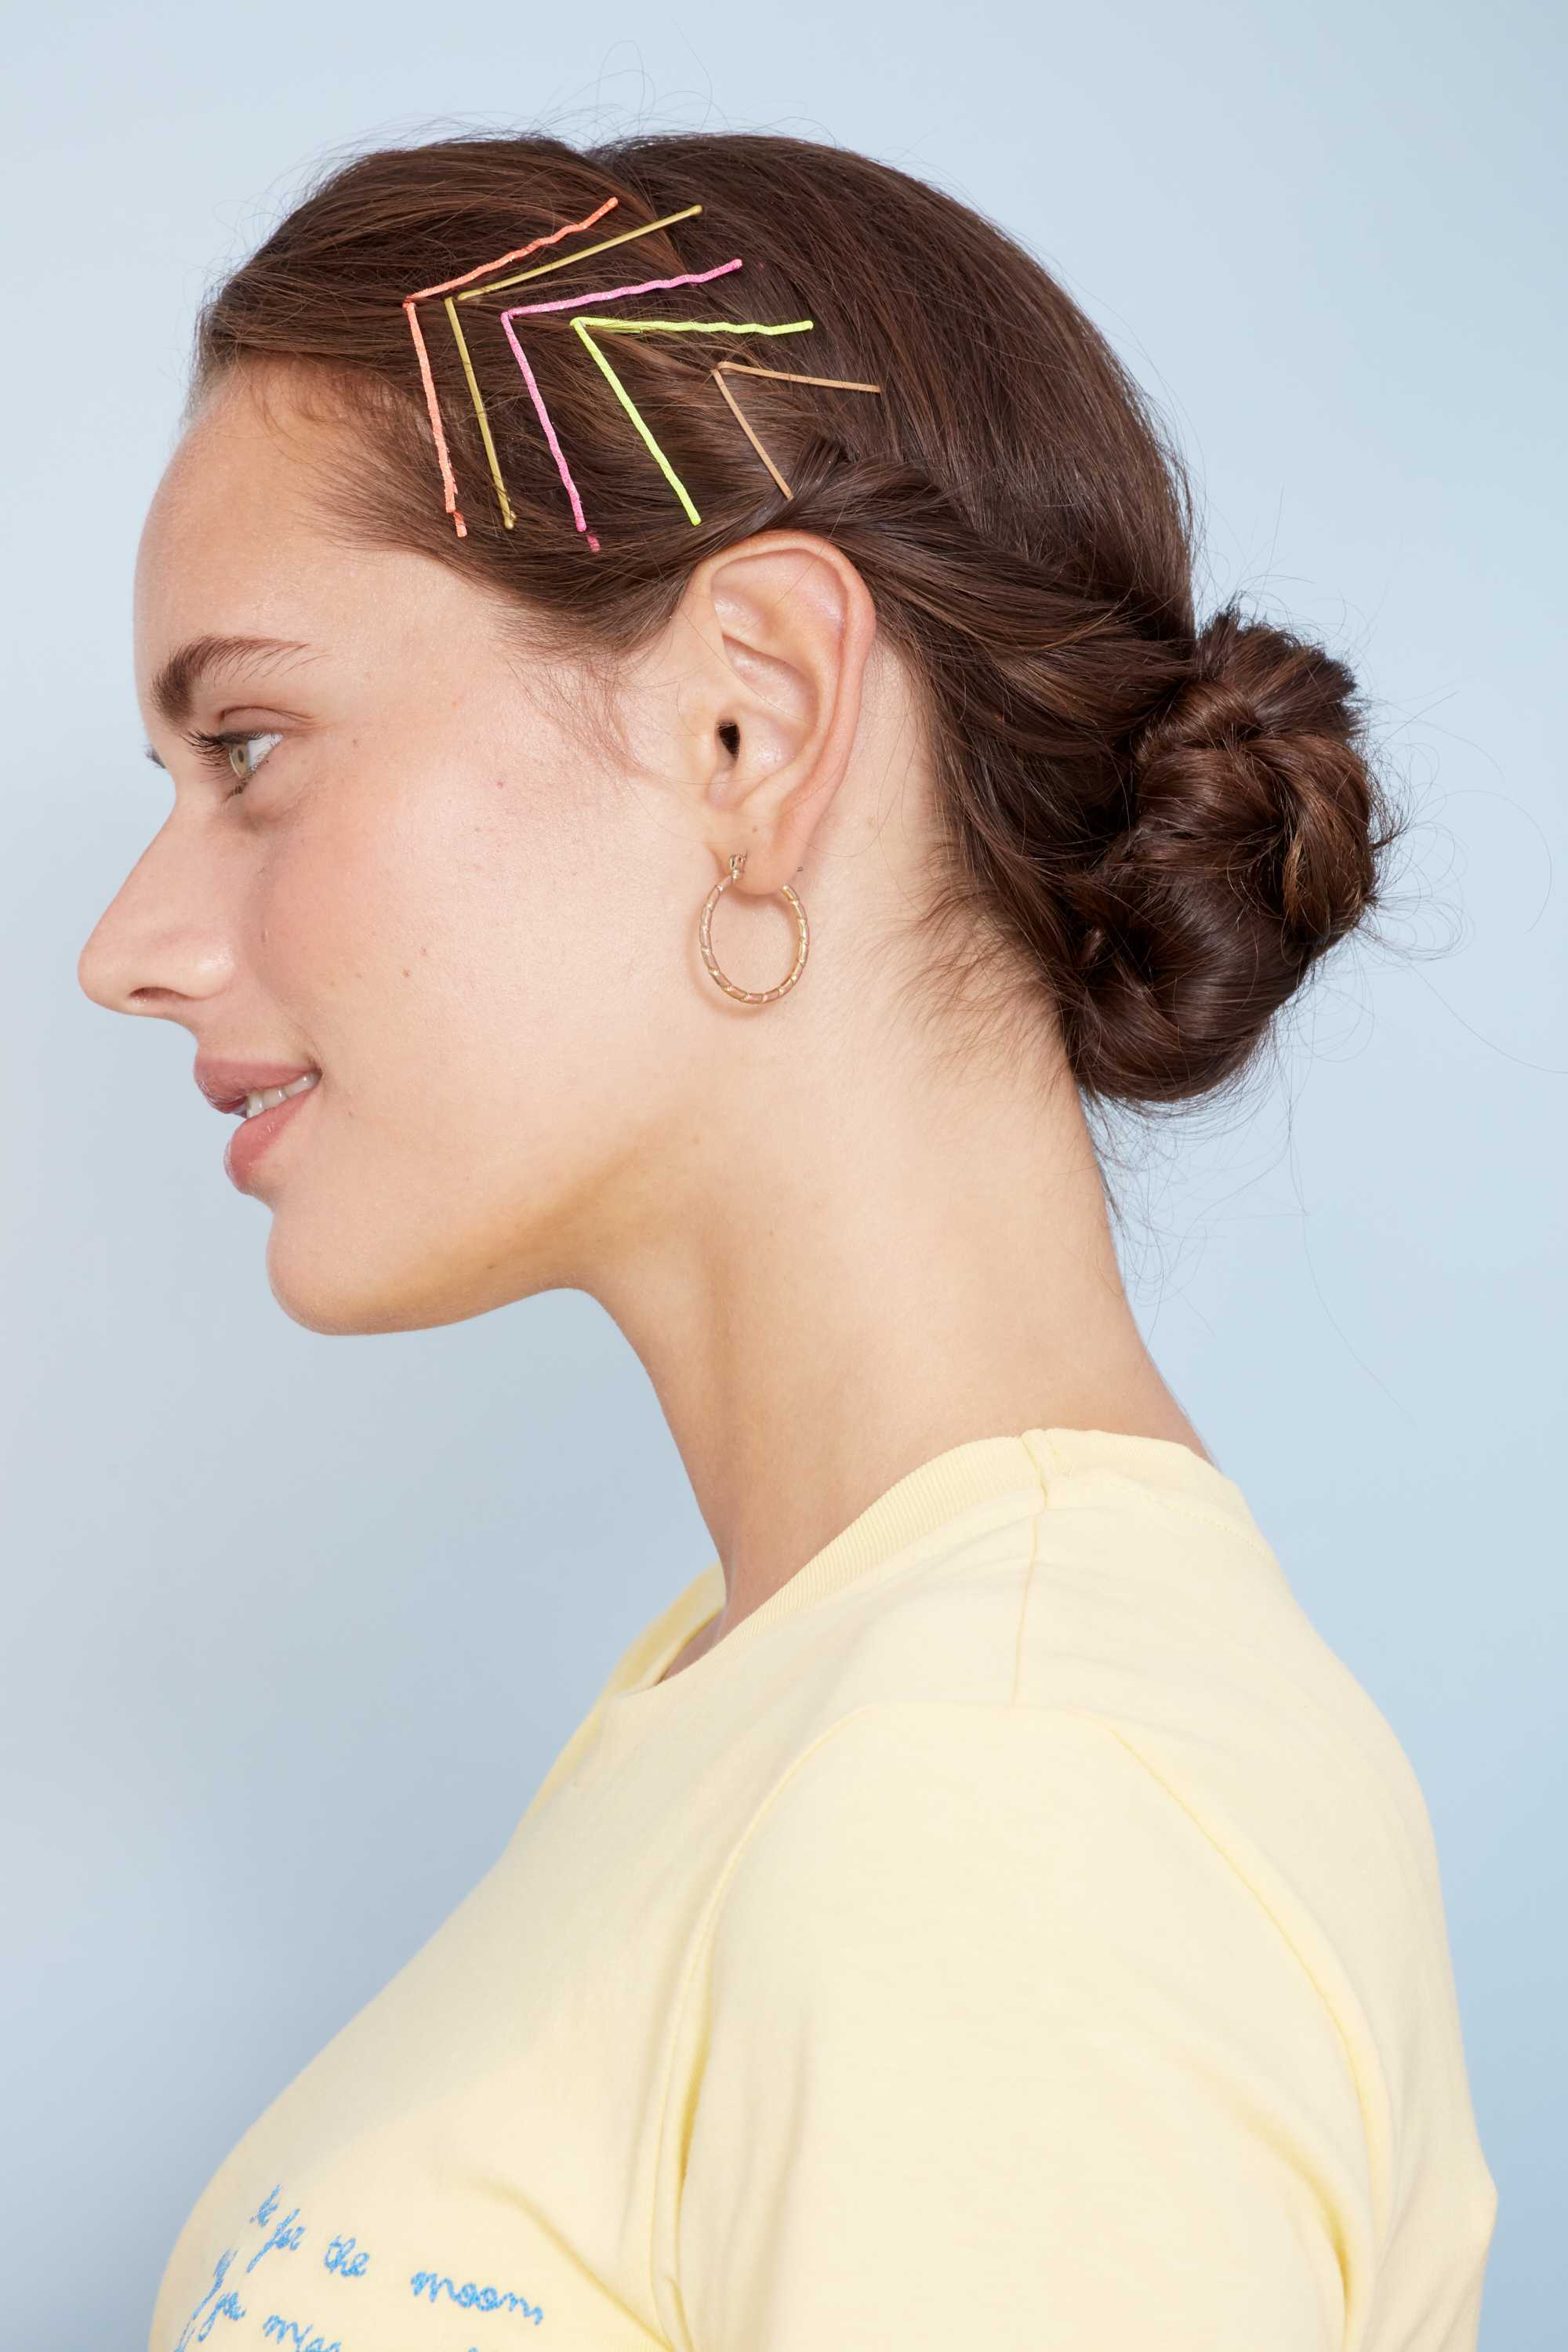 Bobby pin hairstyles: Close up shot of a woman with chestnur brown hair styled into a low bun with bobby pins styled into an arrow on the side of her hair, posing in a studio setting